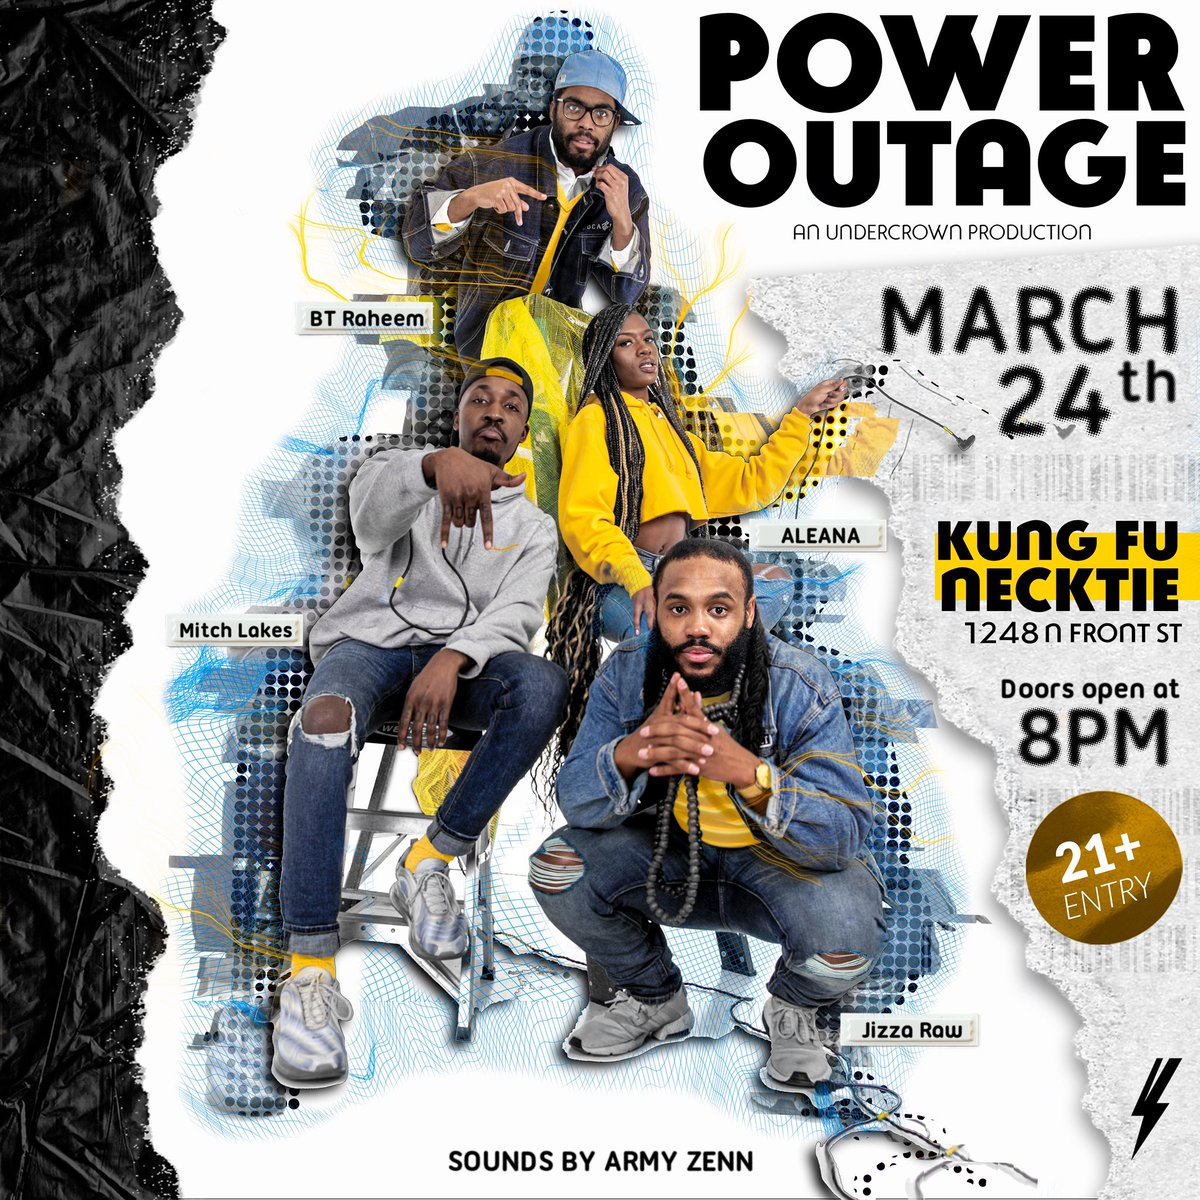 #POWEROUTAGE   MARCH 24th   I'm providing the sounds for  @weareundercrown's first show production along w some amazing artists underground ⚡️⚡️⚡️  Live performances by @aleanaop @mitchlakes @jizzaraw and @BT22_  tix avail via @weareundercrown  http://poweroutagekfn.eventbrite.com